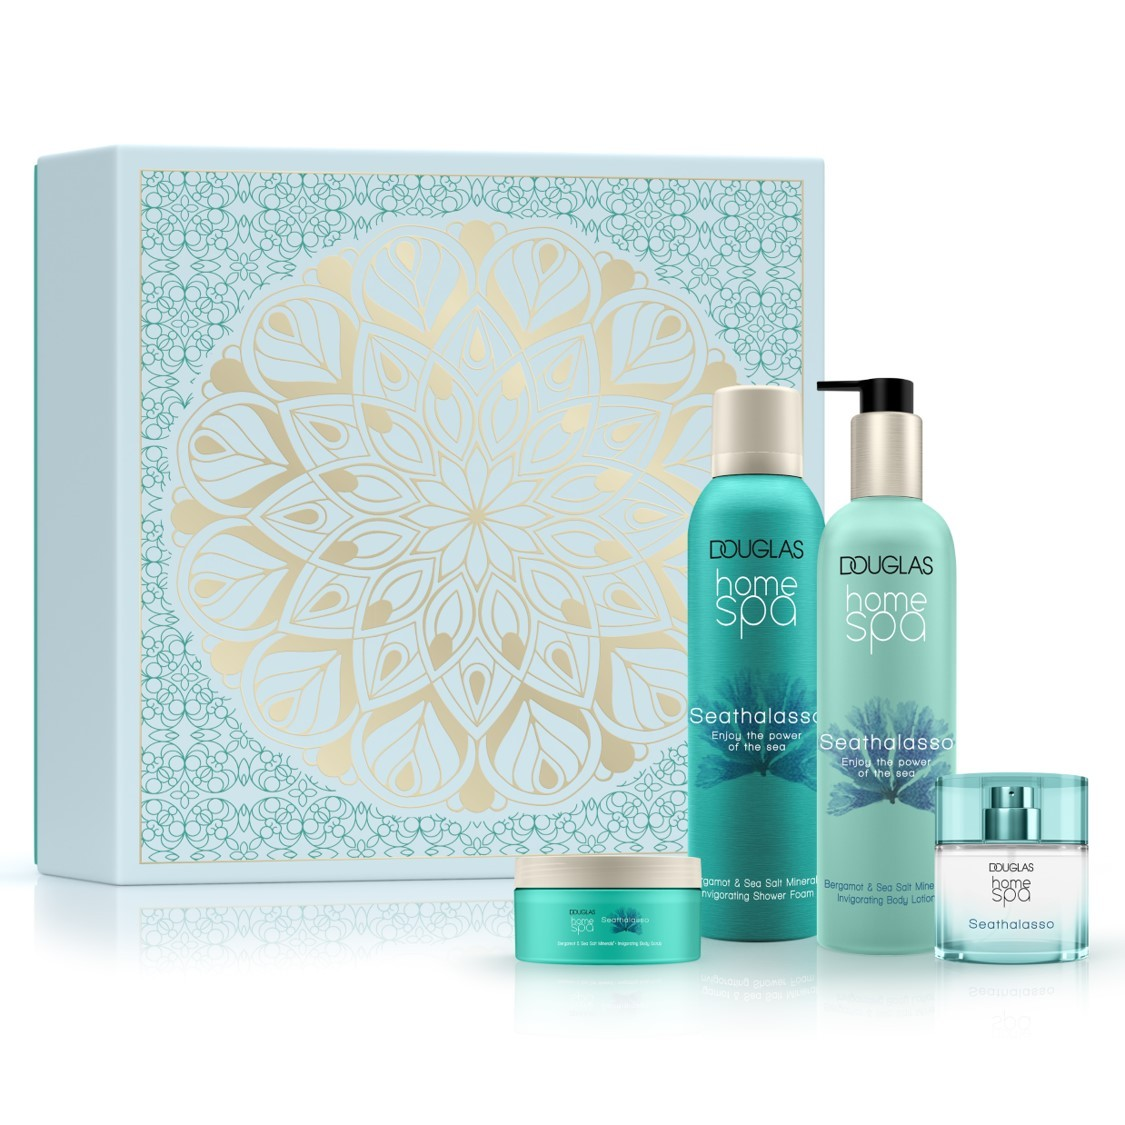 Douglas Collection - Seathalasso Luxury Invigorating Set -